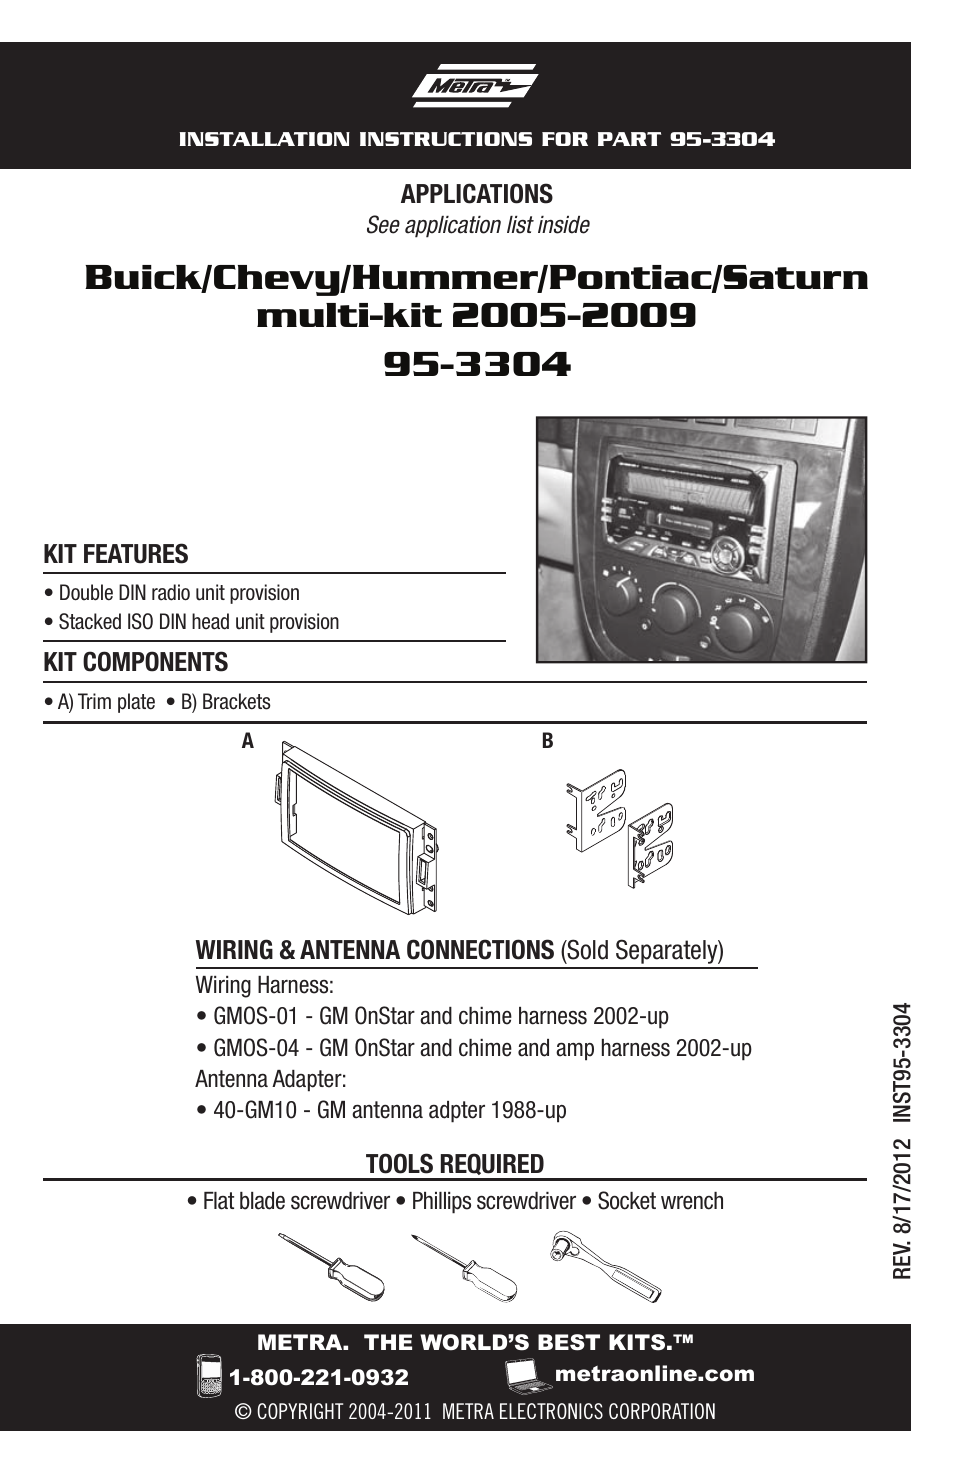 Metra Electronics 95-3304 User Manual | 20 pages on yamaha wiring harness, rockford fosgate wiring harness, jbl wiring harness, chevy wiring harness, pac wiring harness, midland wiring harness, tripp lite wiring harness, stinger wiring harness, bose wiring harness, apc wiring harness, emerson wiring harness, scosche wiring harness, mitsubishi wiring harness, eclipse wiring harness, car wiring harness, lowrance wiring harness, cobra wiring harness, garmin wiring harness, automotive wiring harness, pyle wiring harness,